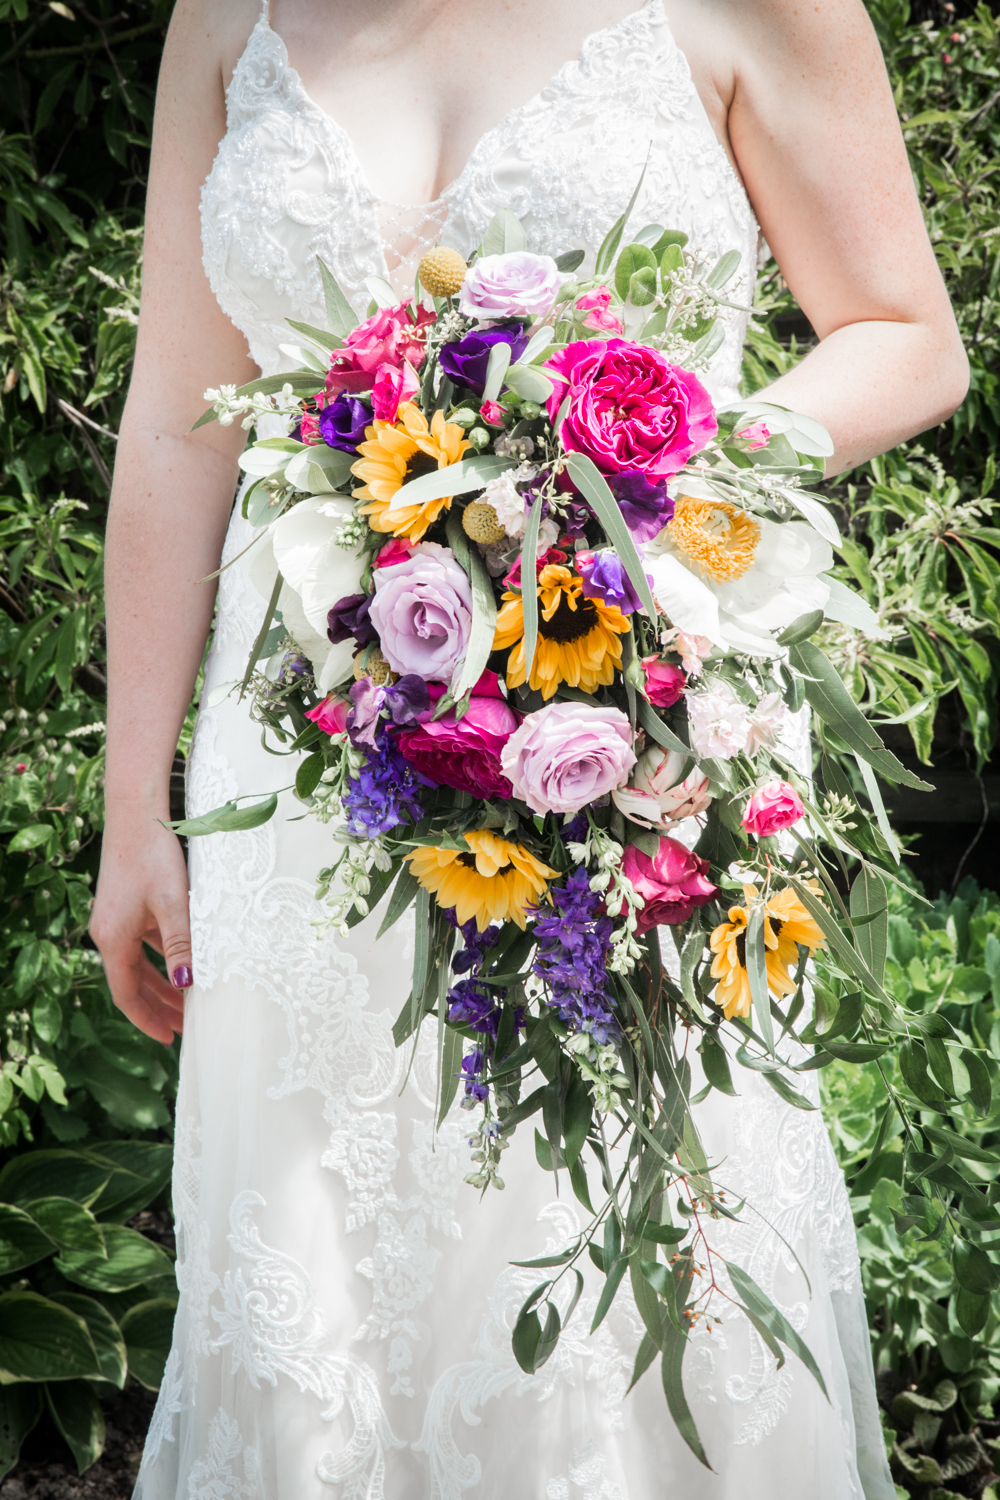 Wedding Bouquet Photography Swansea, The gower and Llanelli